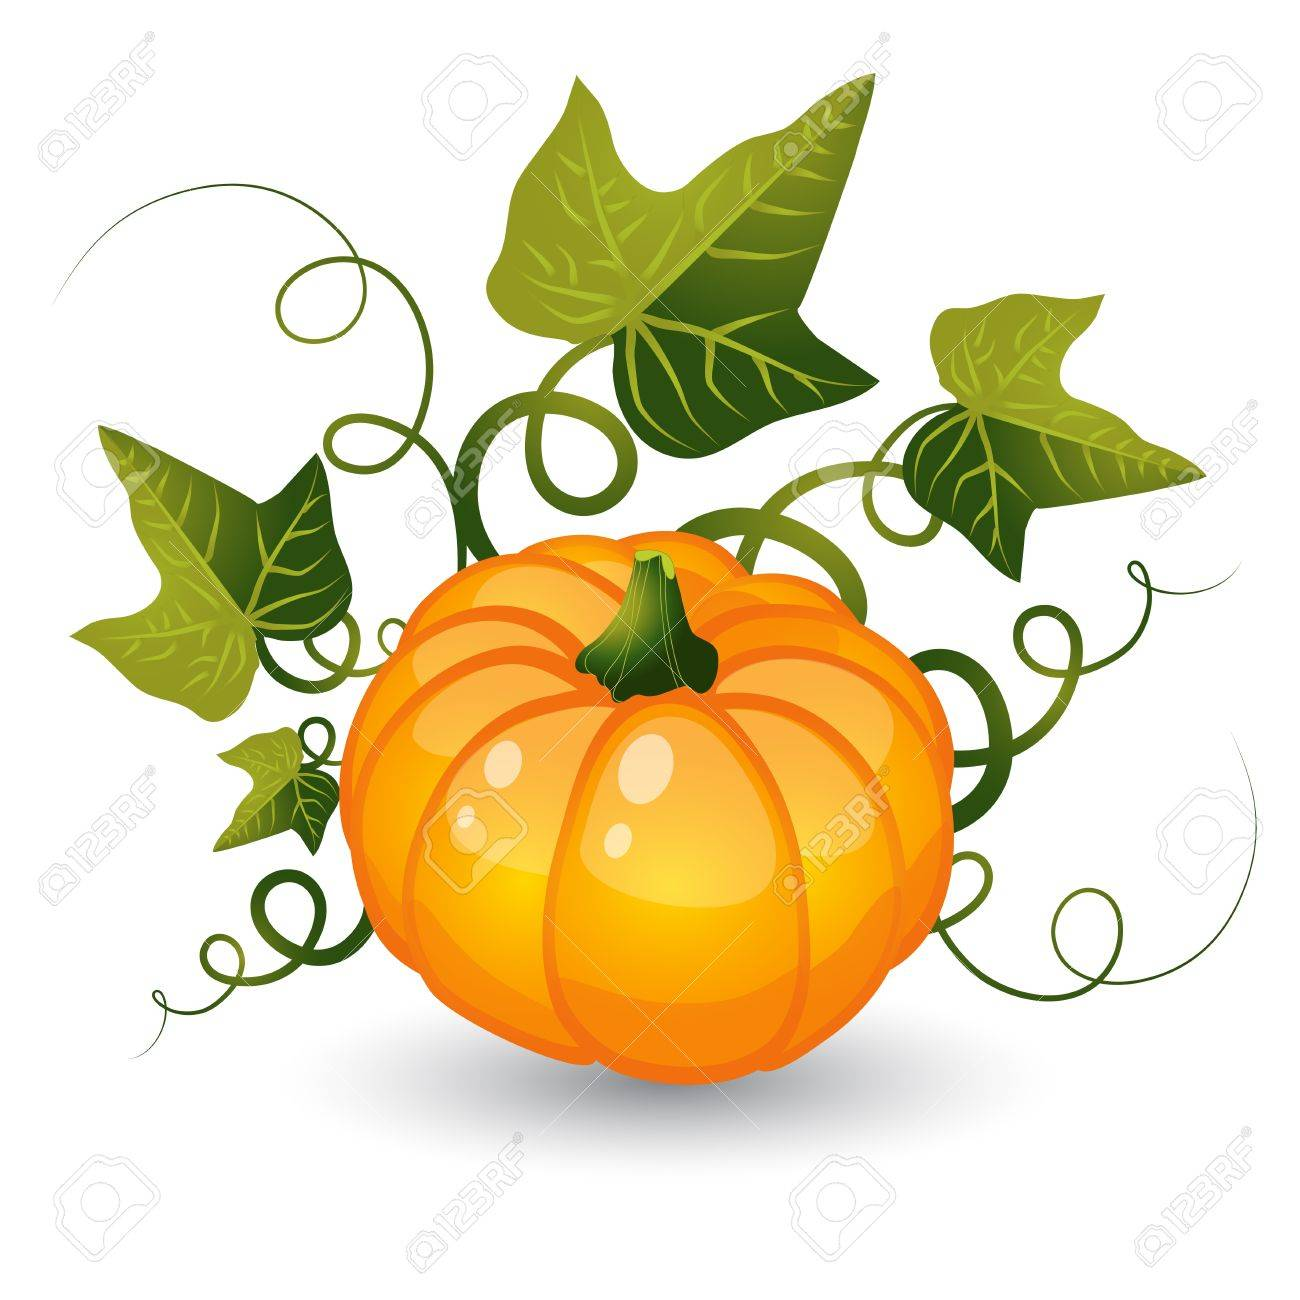 Pumpkin with leaves on a white background Stock Vector - 15285764